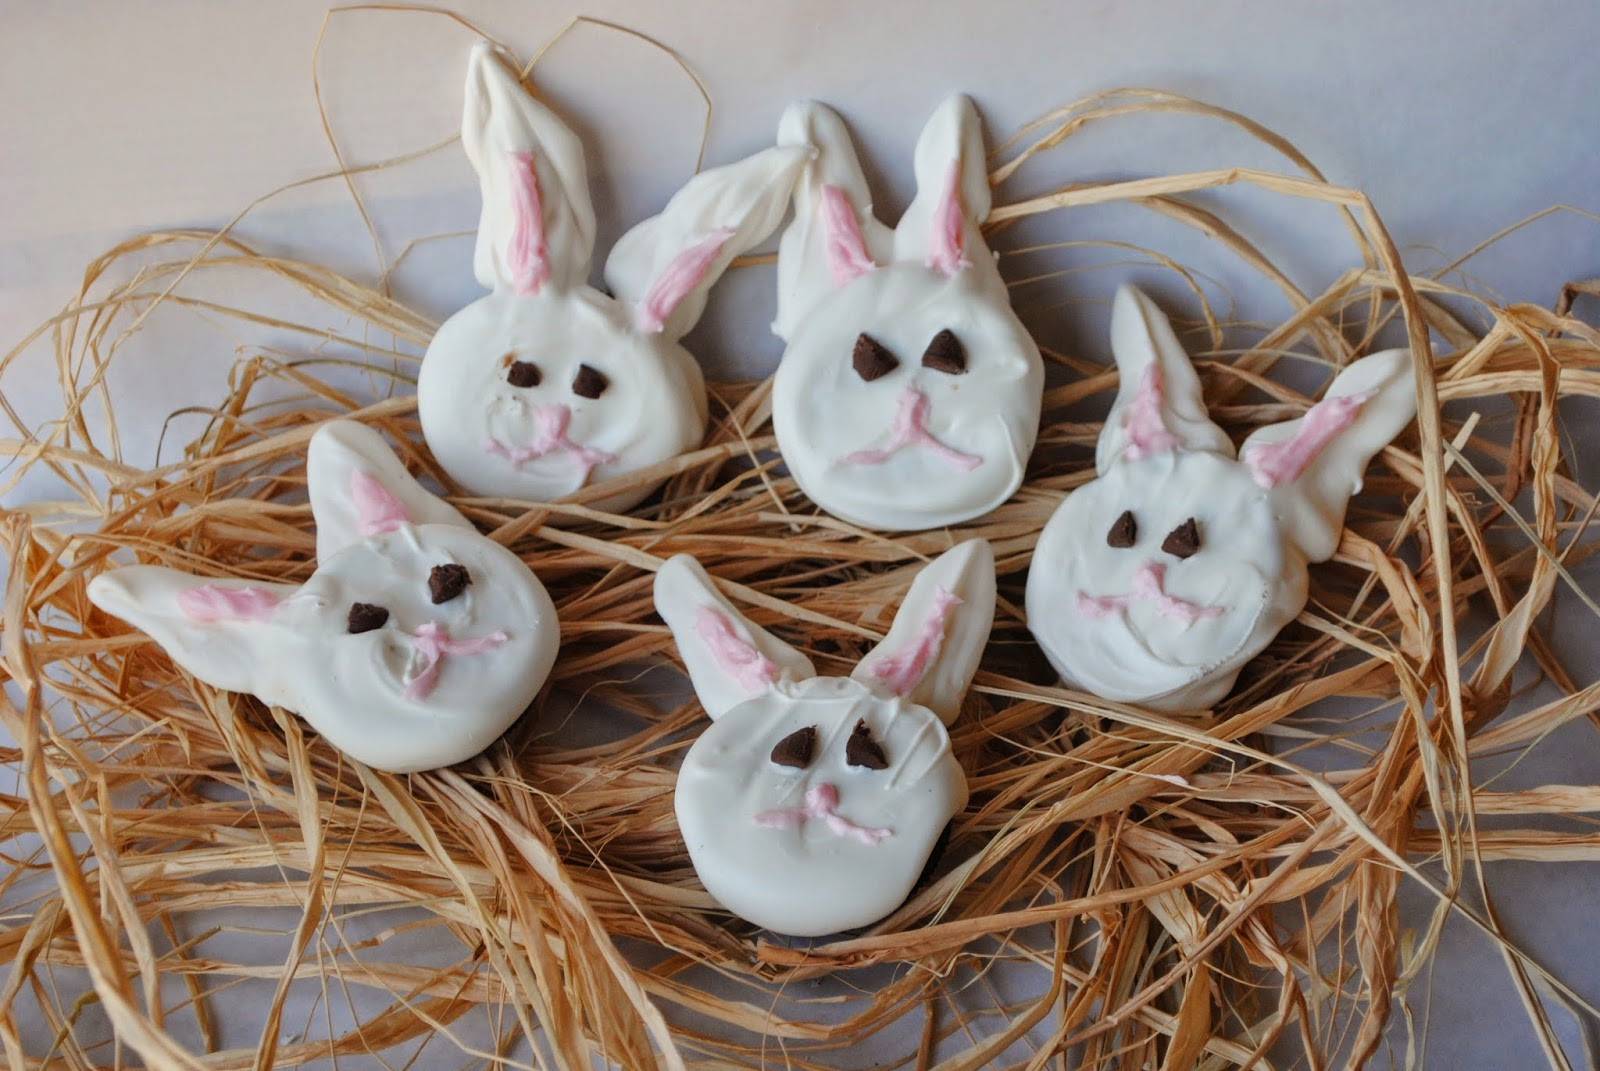 Candy Covered Oreo Bunny Treats on Raffia